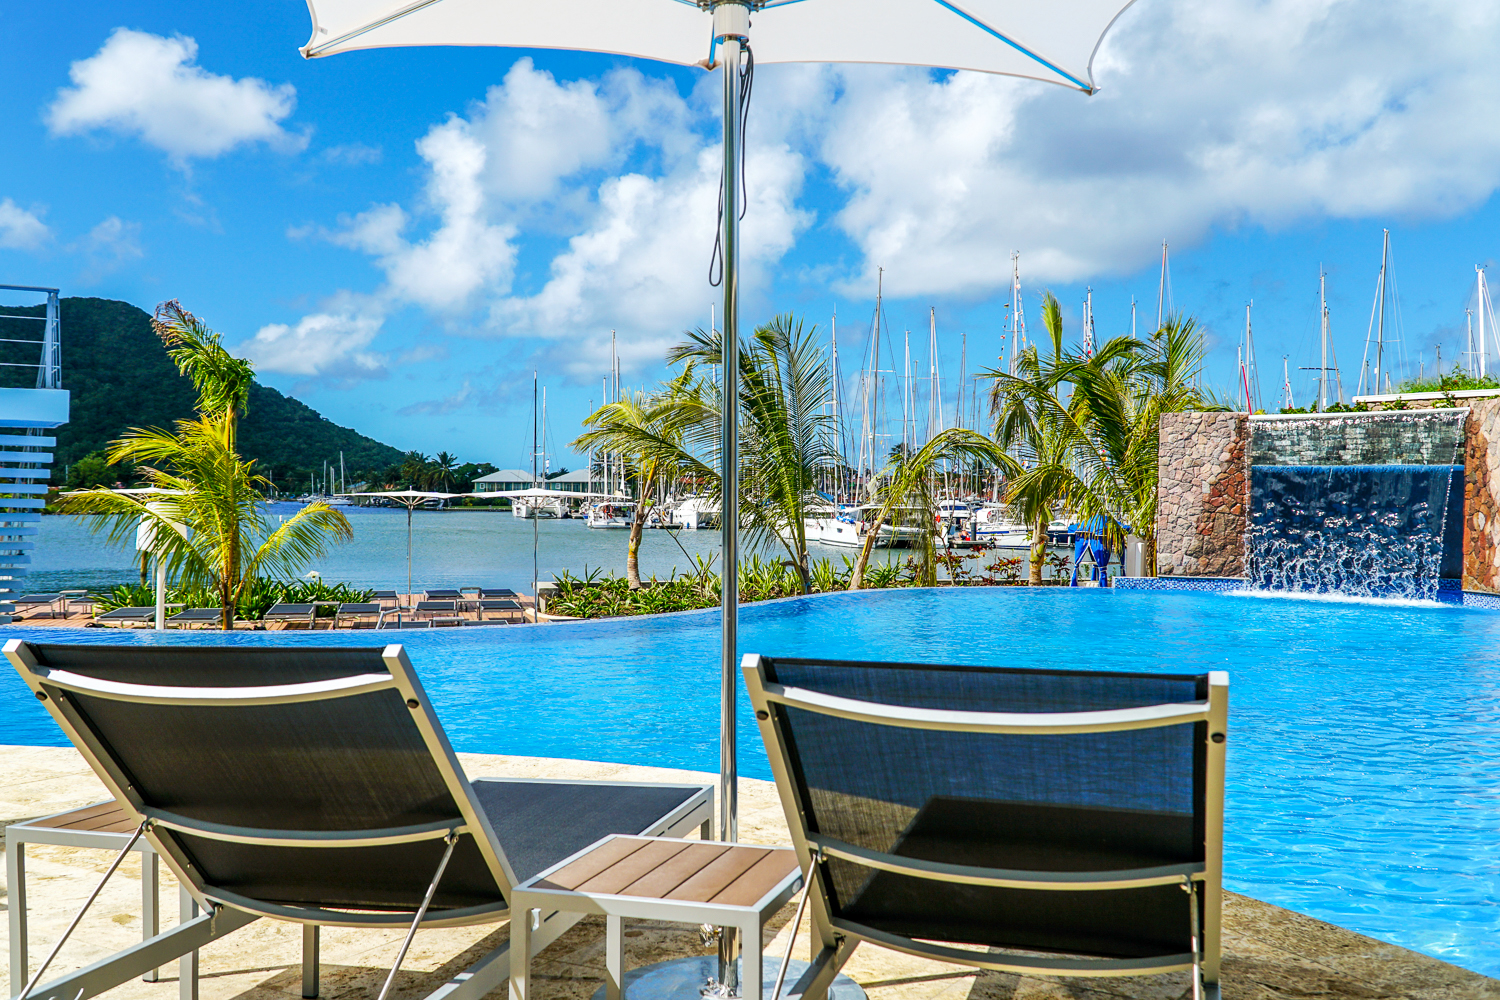 Lounge chairs by the pool facing a harbor where boats are anchored at the Harbor Club Hotel. MEP designed by 2L Engineering..